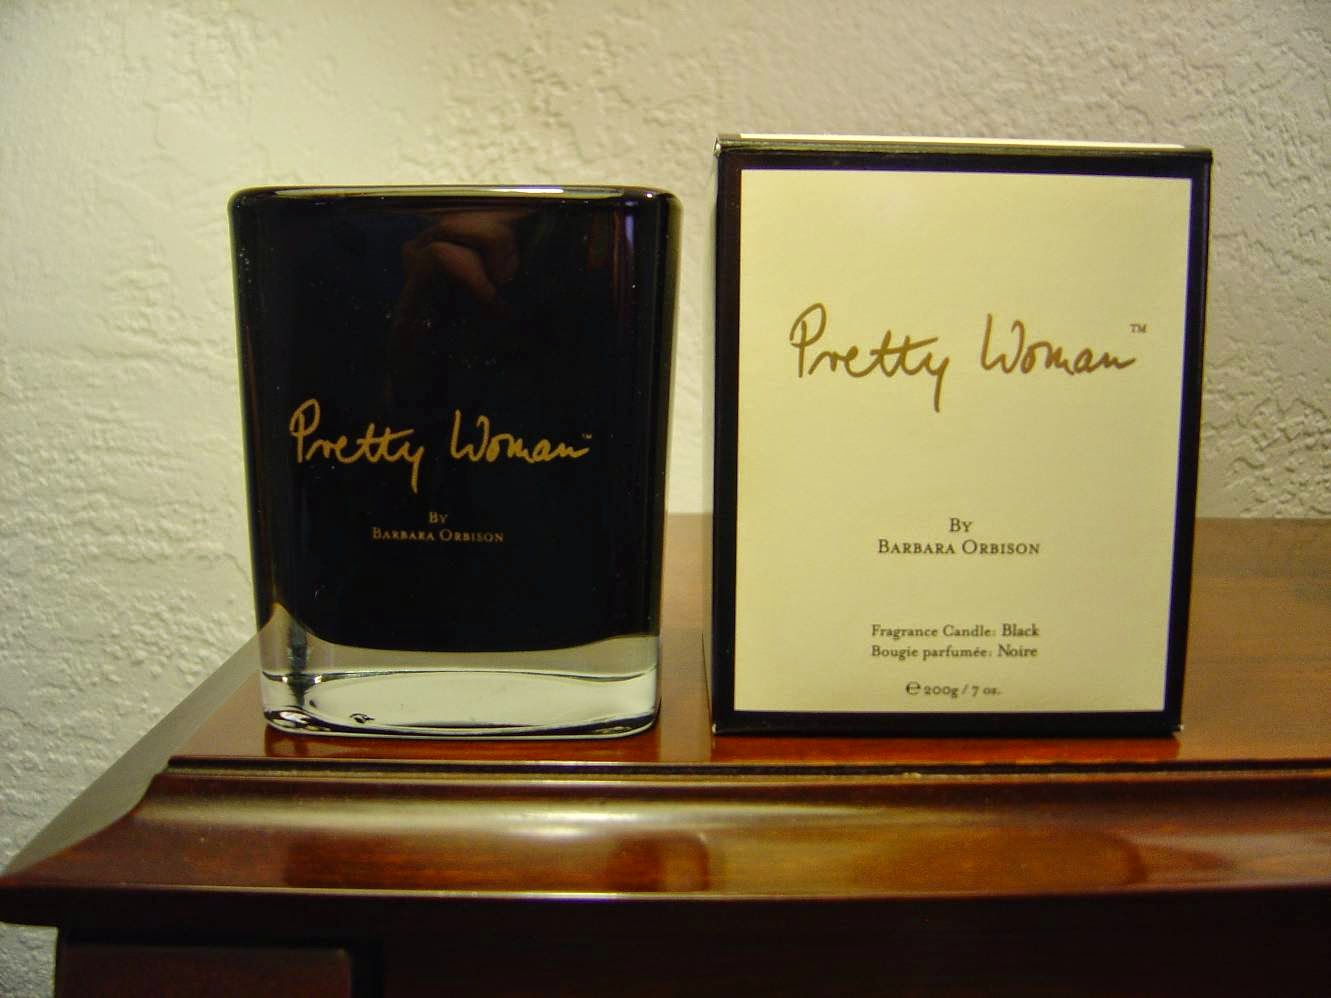 Pretty Woman Scented Candle.jpeg